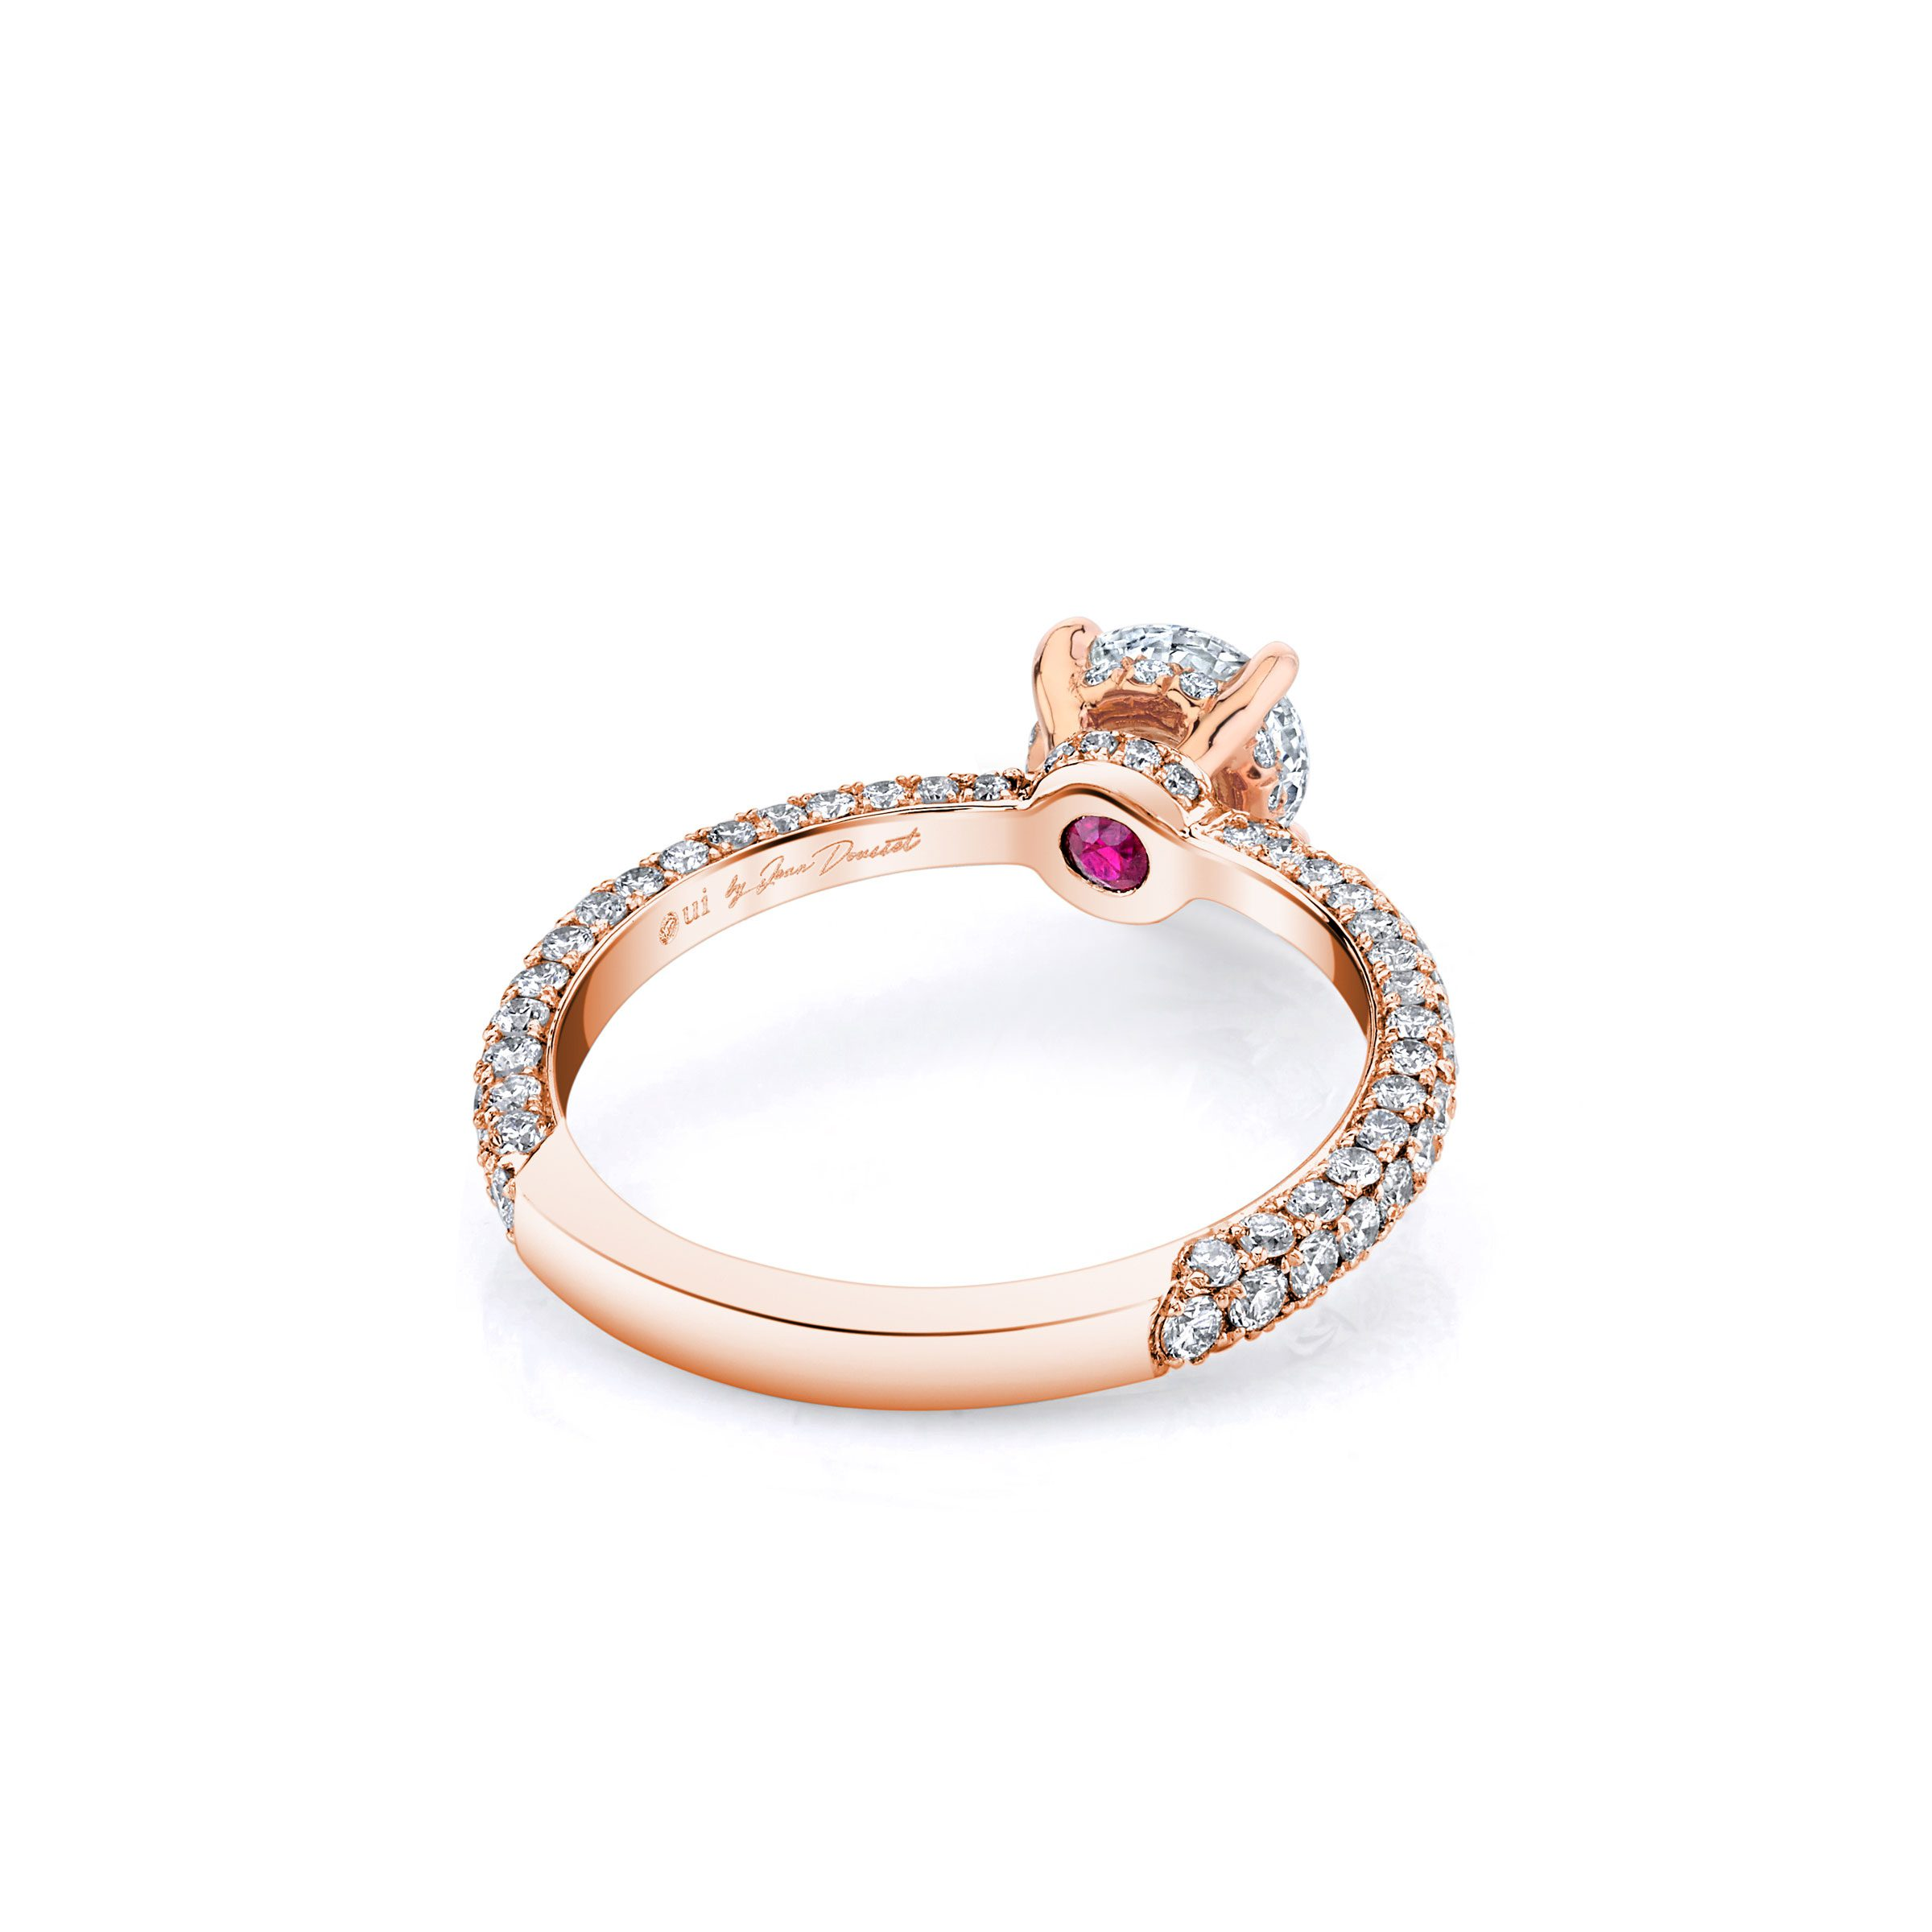 Jacqueline Solitaire Round Brilliant Cut Lab Diamond Engagement Ring with three row pavé 18k rose gold band.